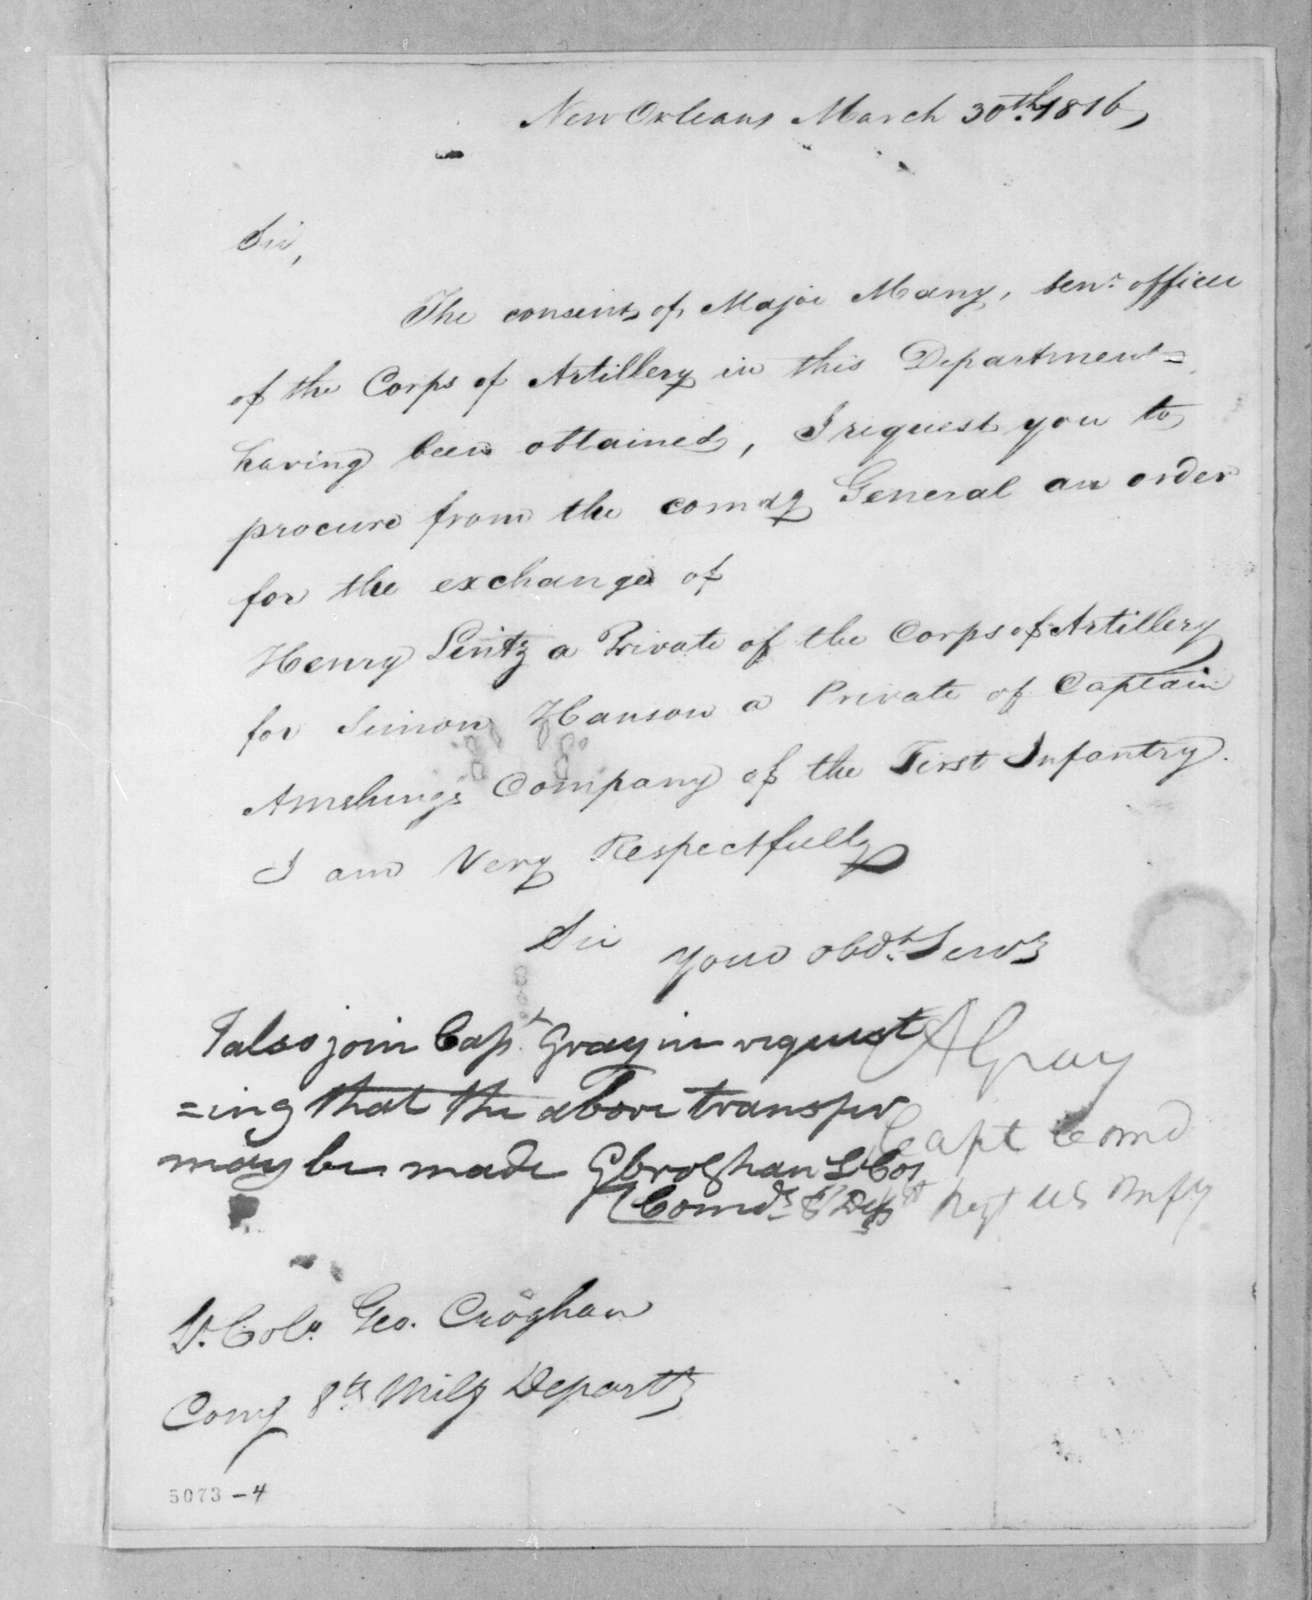 Alexander Gray to George Croghan, March 30, 1816